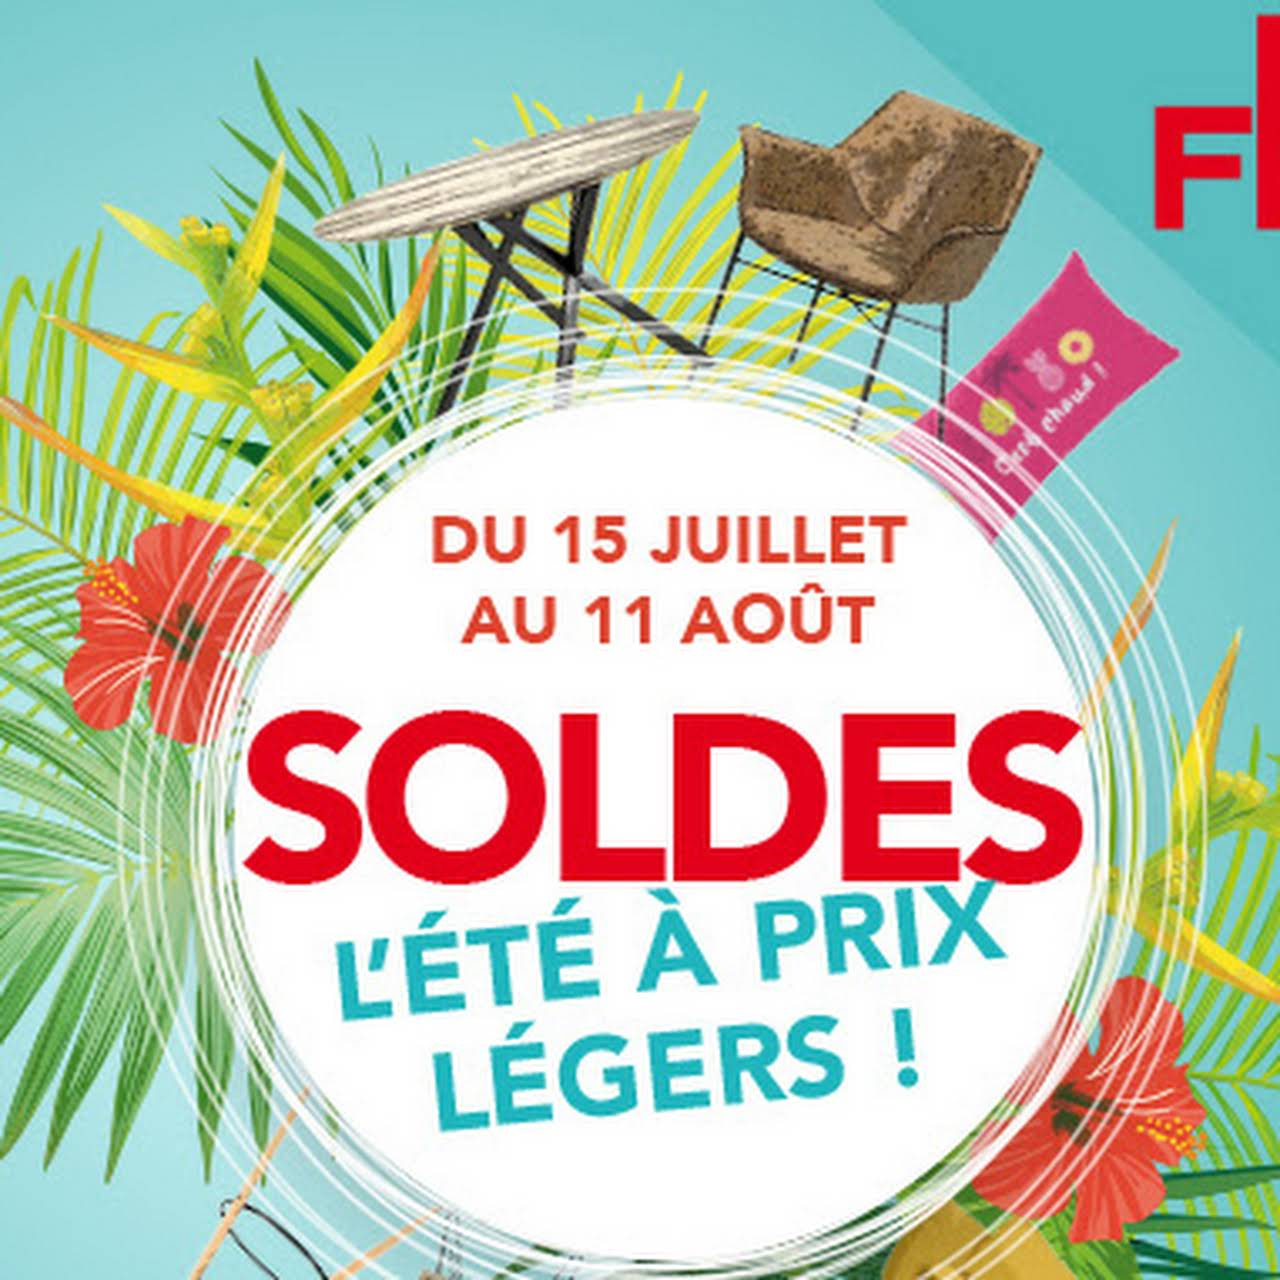 Fly Annecy Magasin De Meubles Et Decoration A Epagny Annecy